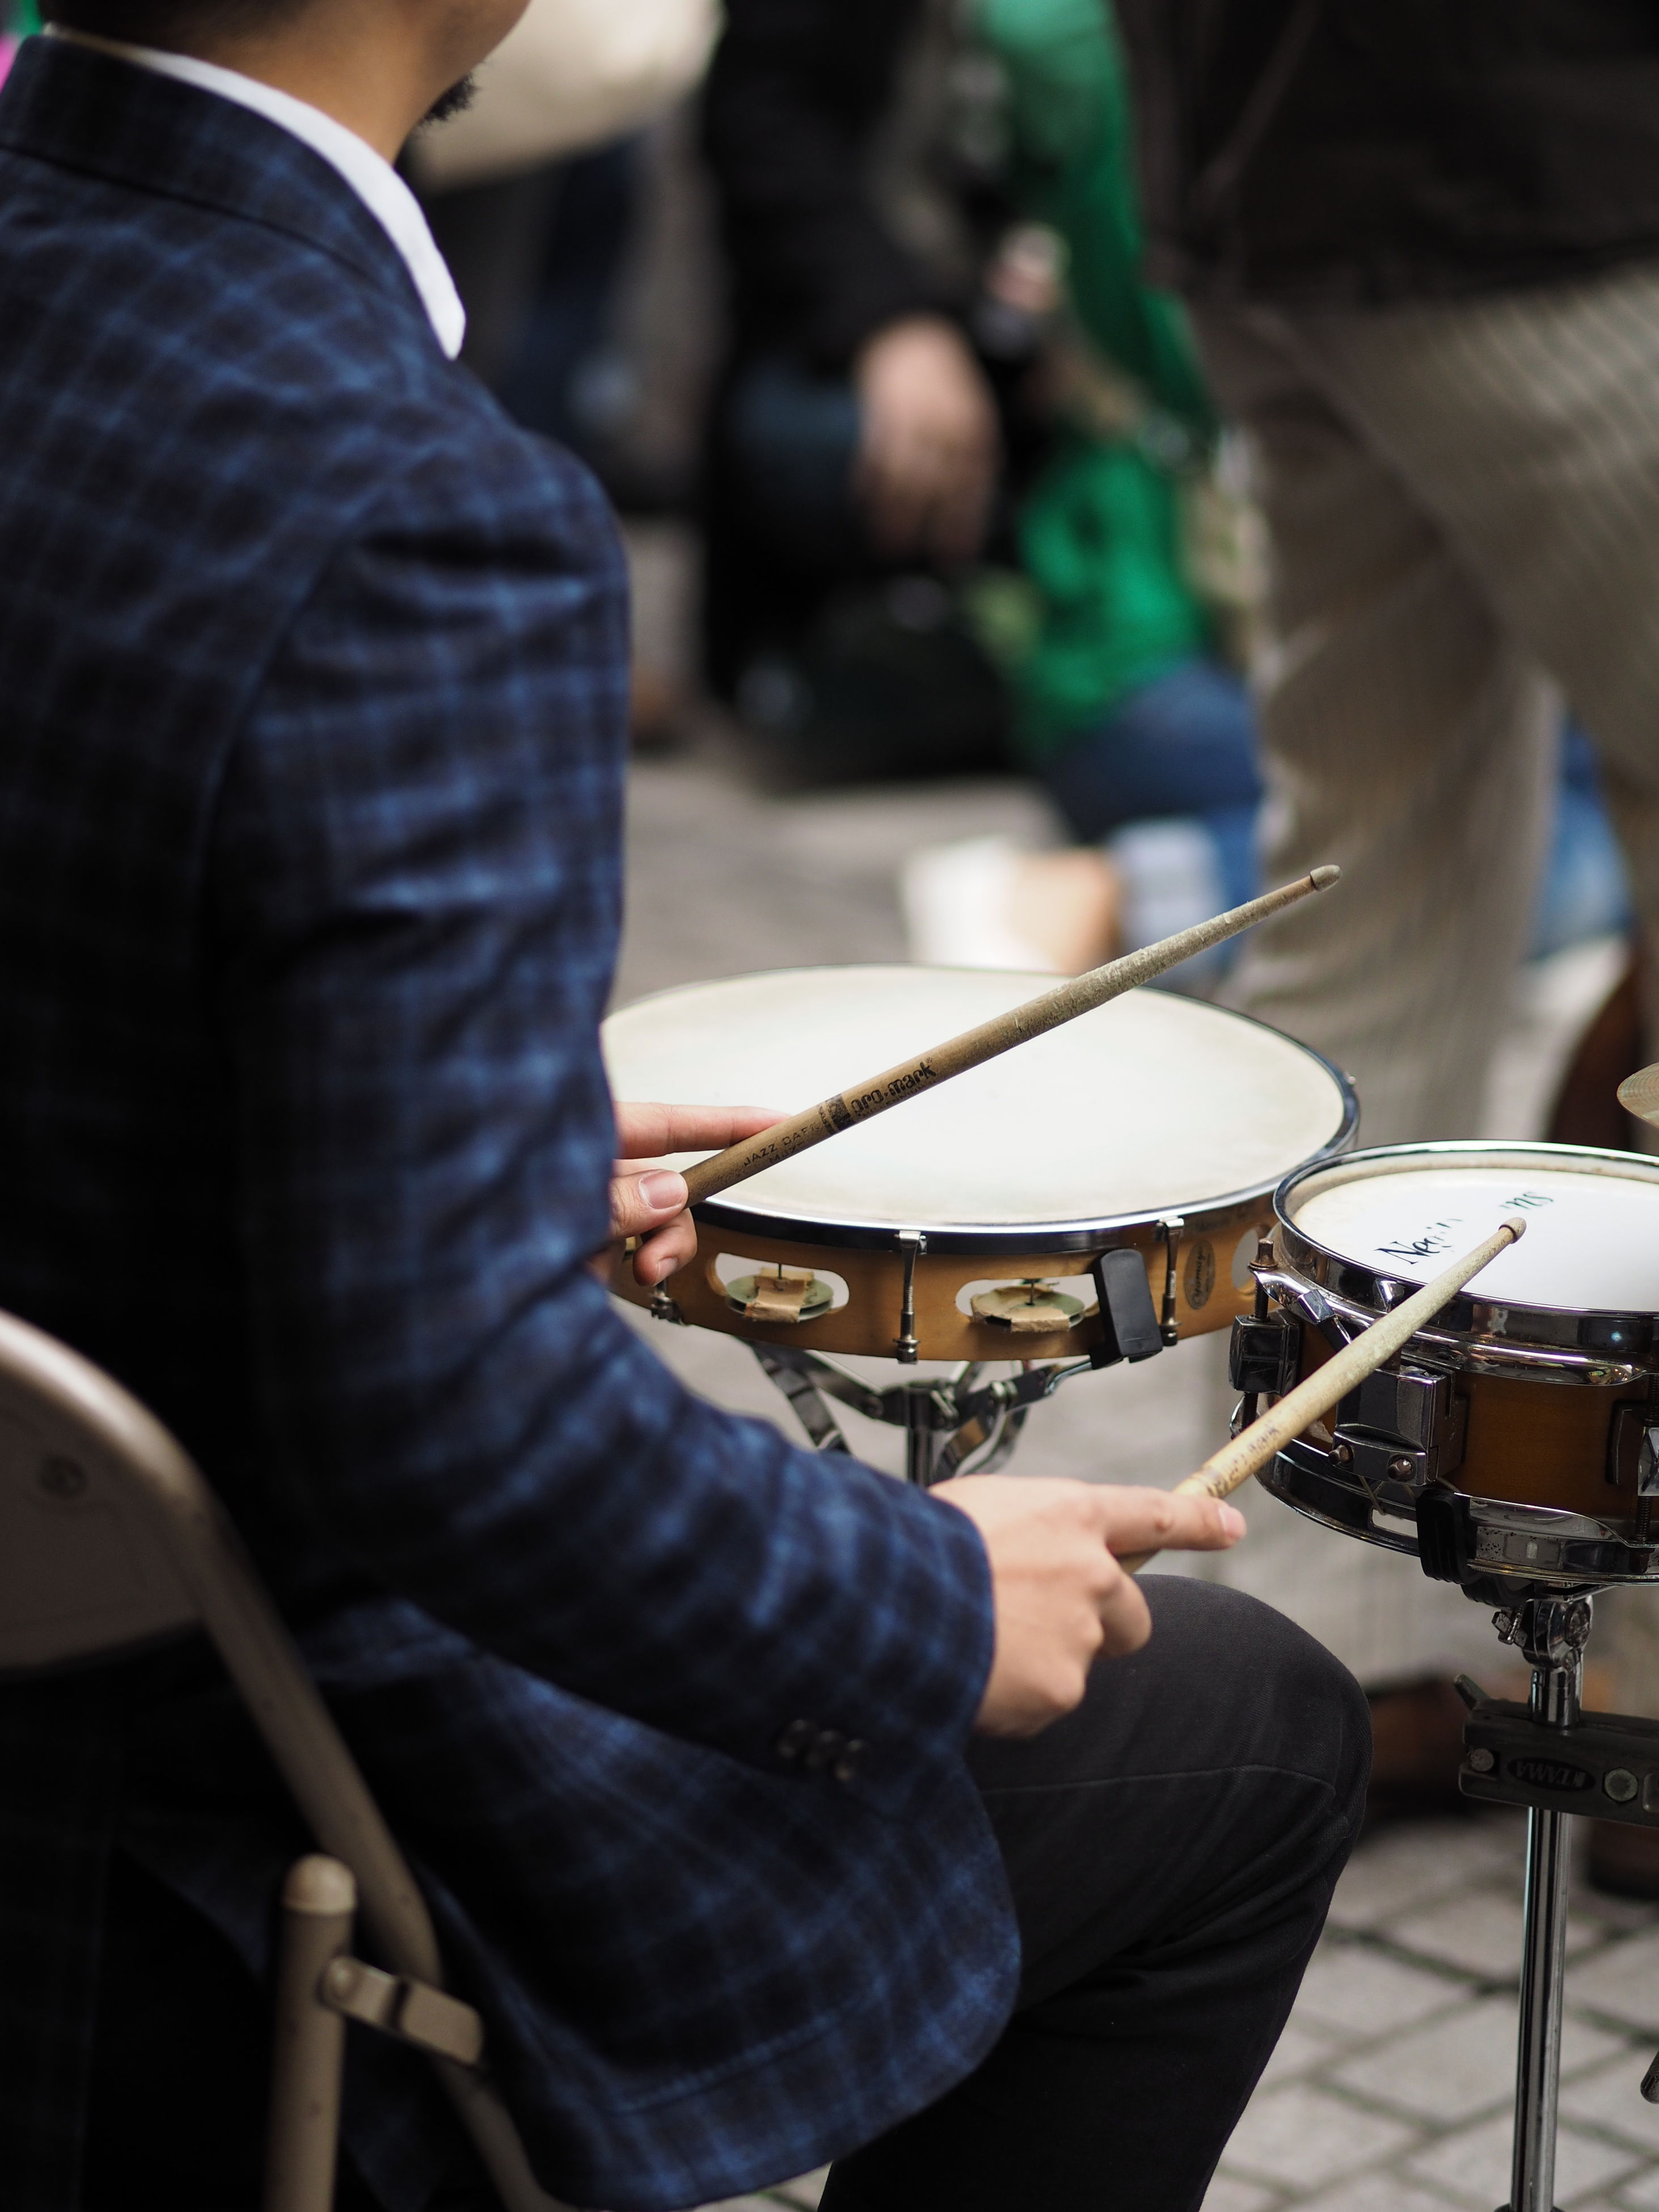 men, music, occupation, working, indoors, musical instrument, holding, lifestyles, technology, focus on foreground, leisure activity, part of, arts culture and entertainment, selective focus, person, musical equipment, close-up, equipment